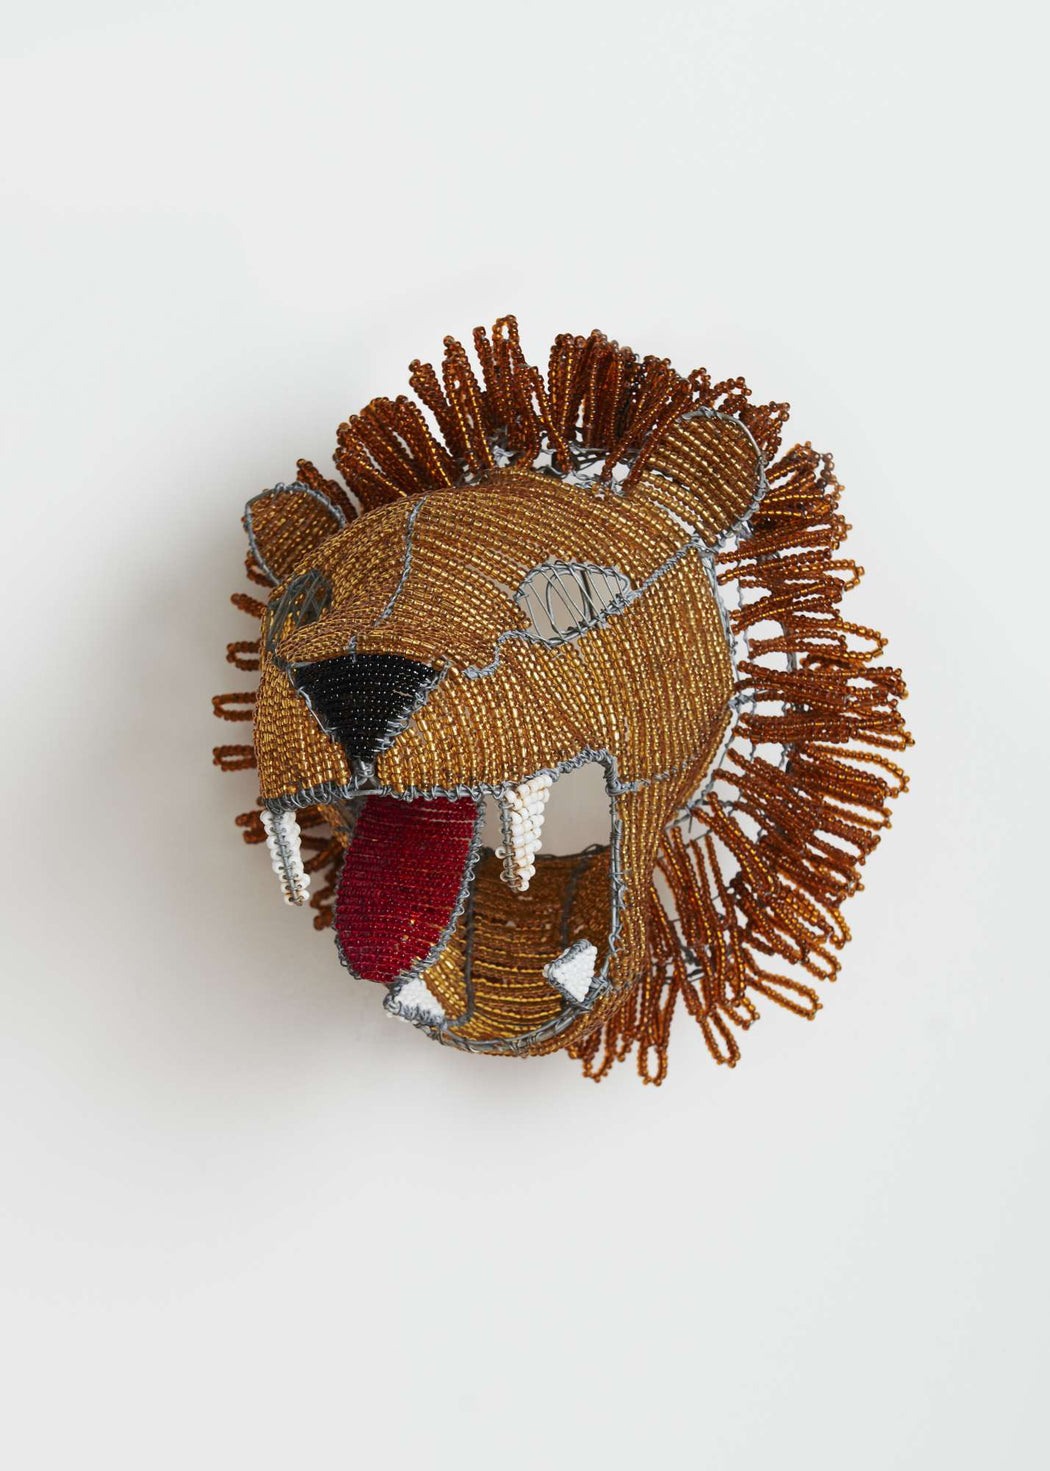 This is a shop, mask, lion, unique, interior, africa, beads, wall, handmade